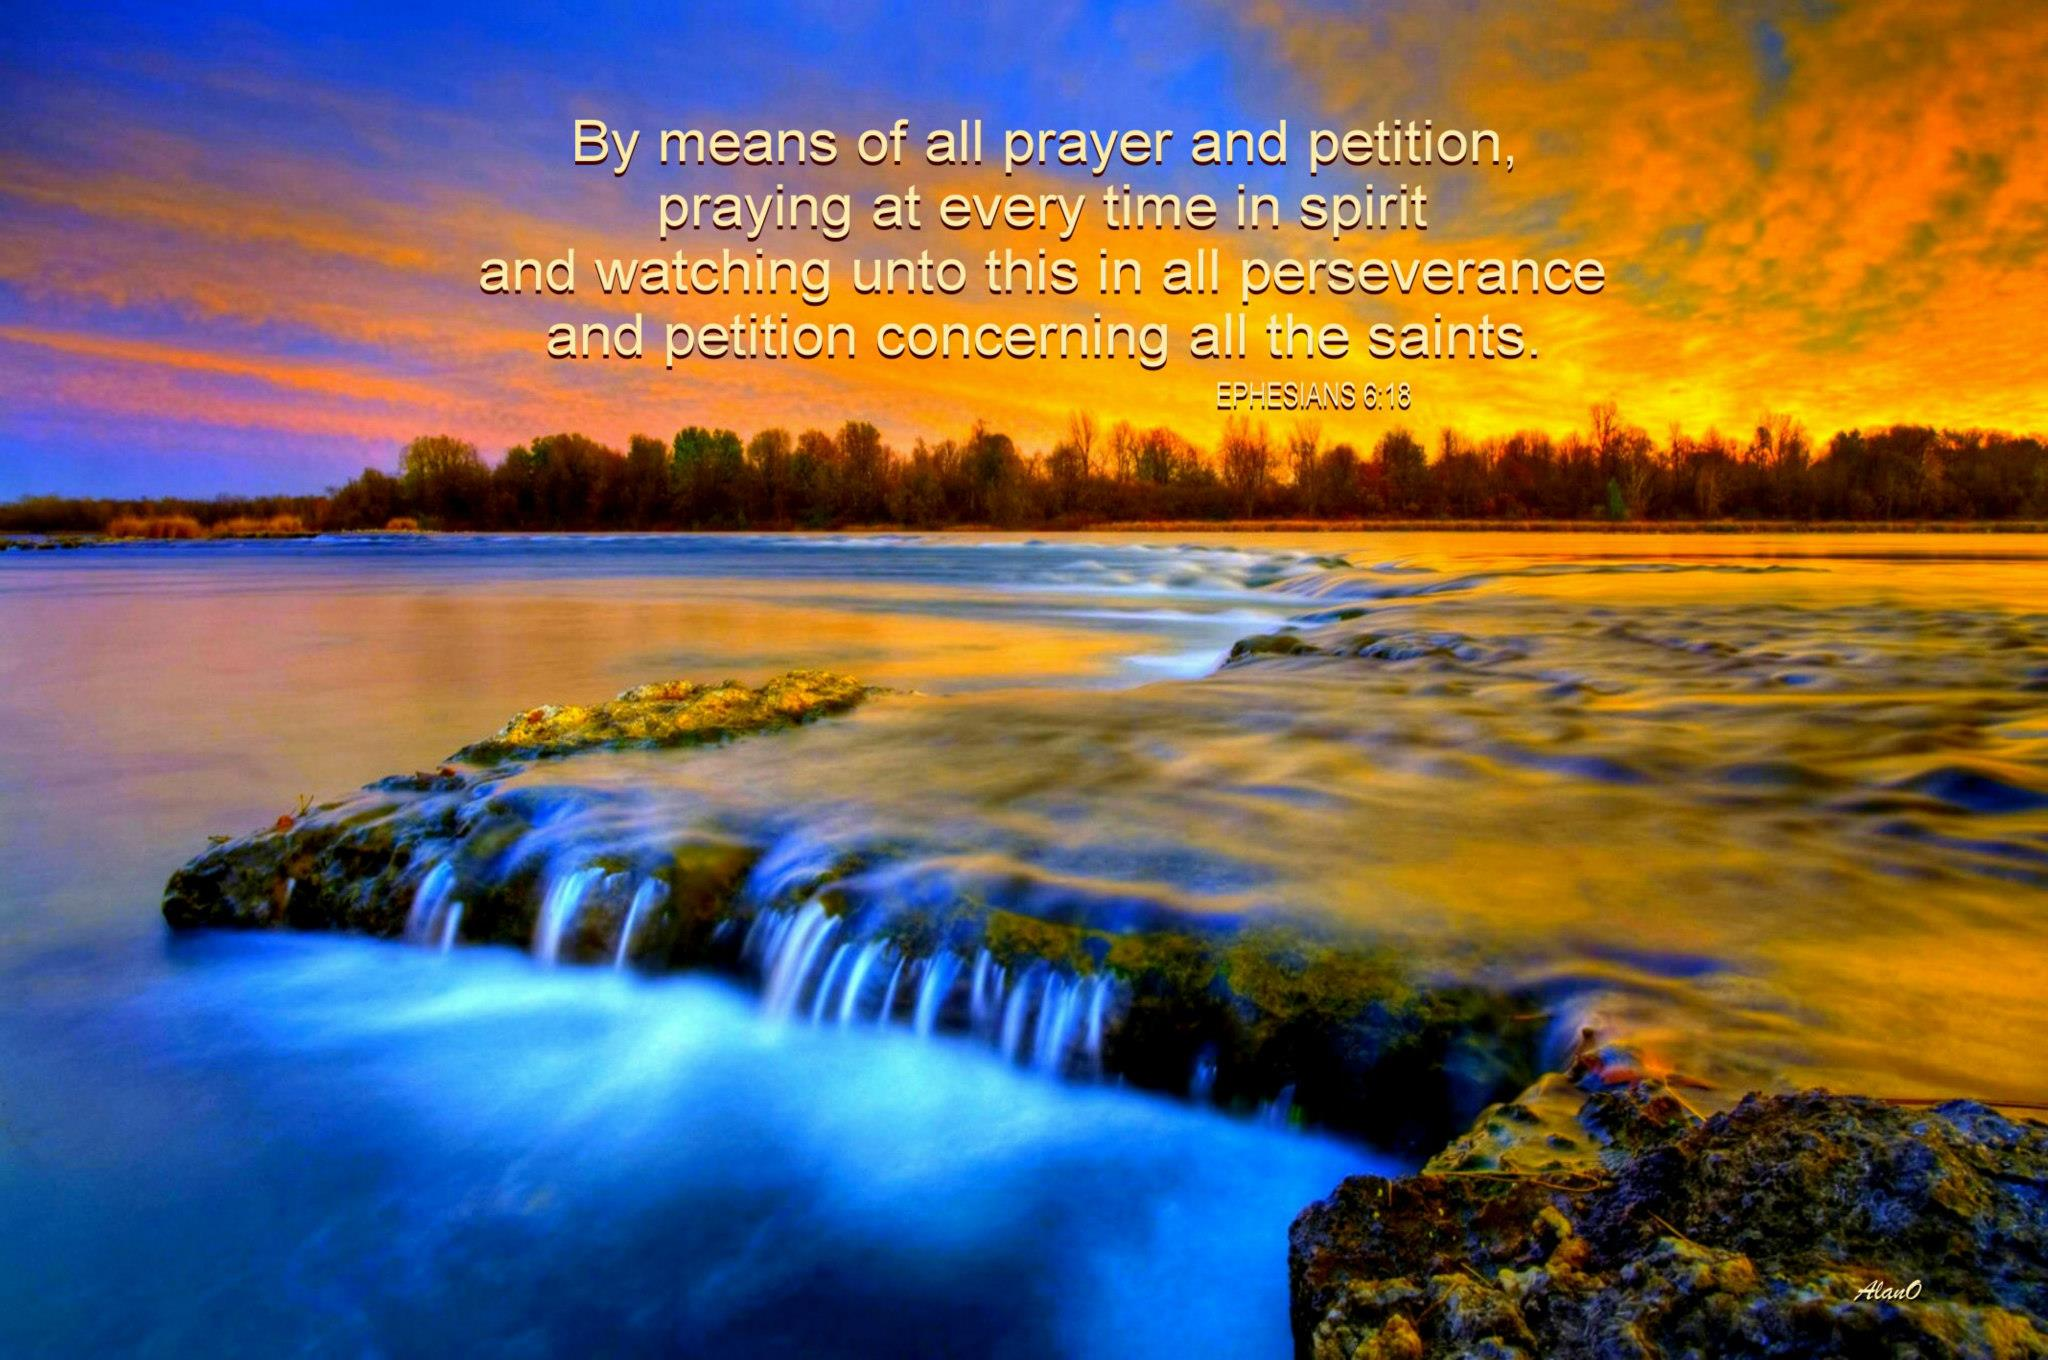 Exercising To Pray Unceasingly By Calling On The Lord And